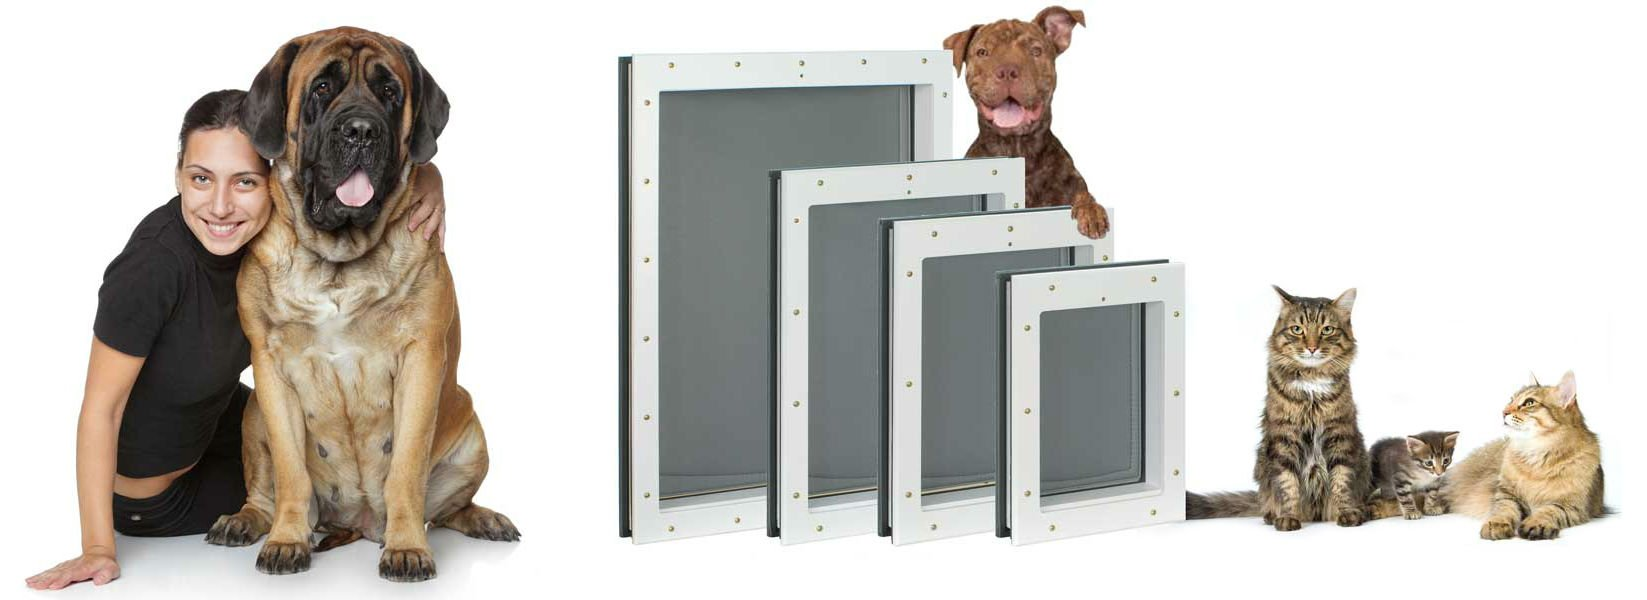 All four sizes of Freedom Pet Pass pet doors with dogs and cats